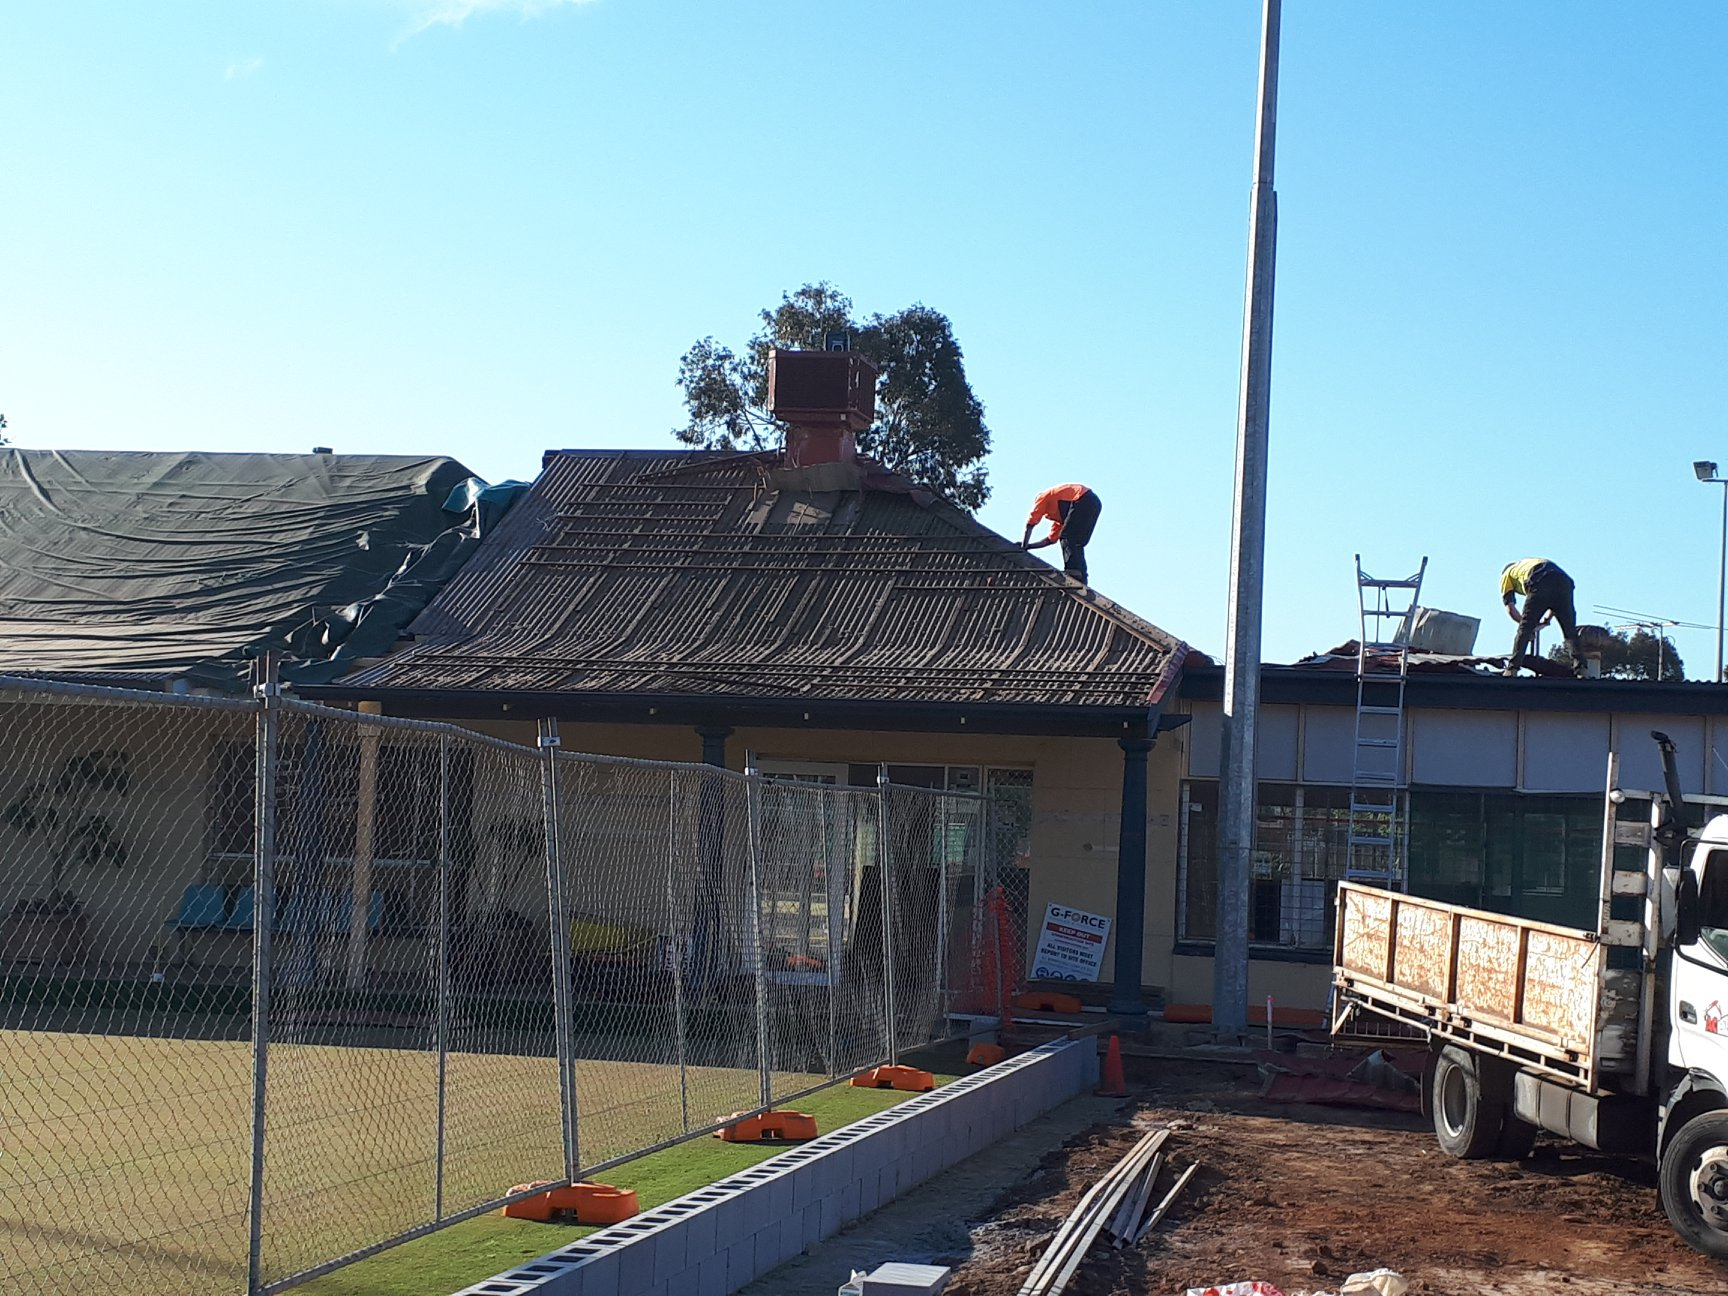 181025 Last stage of roofing works underway